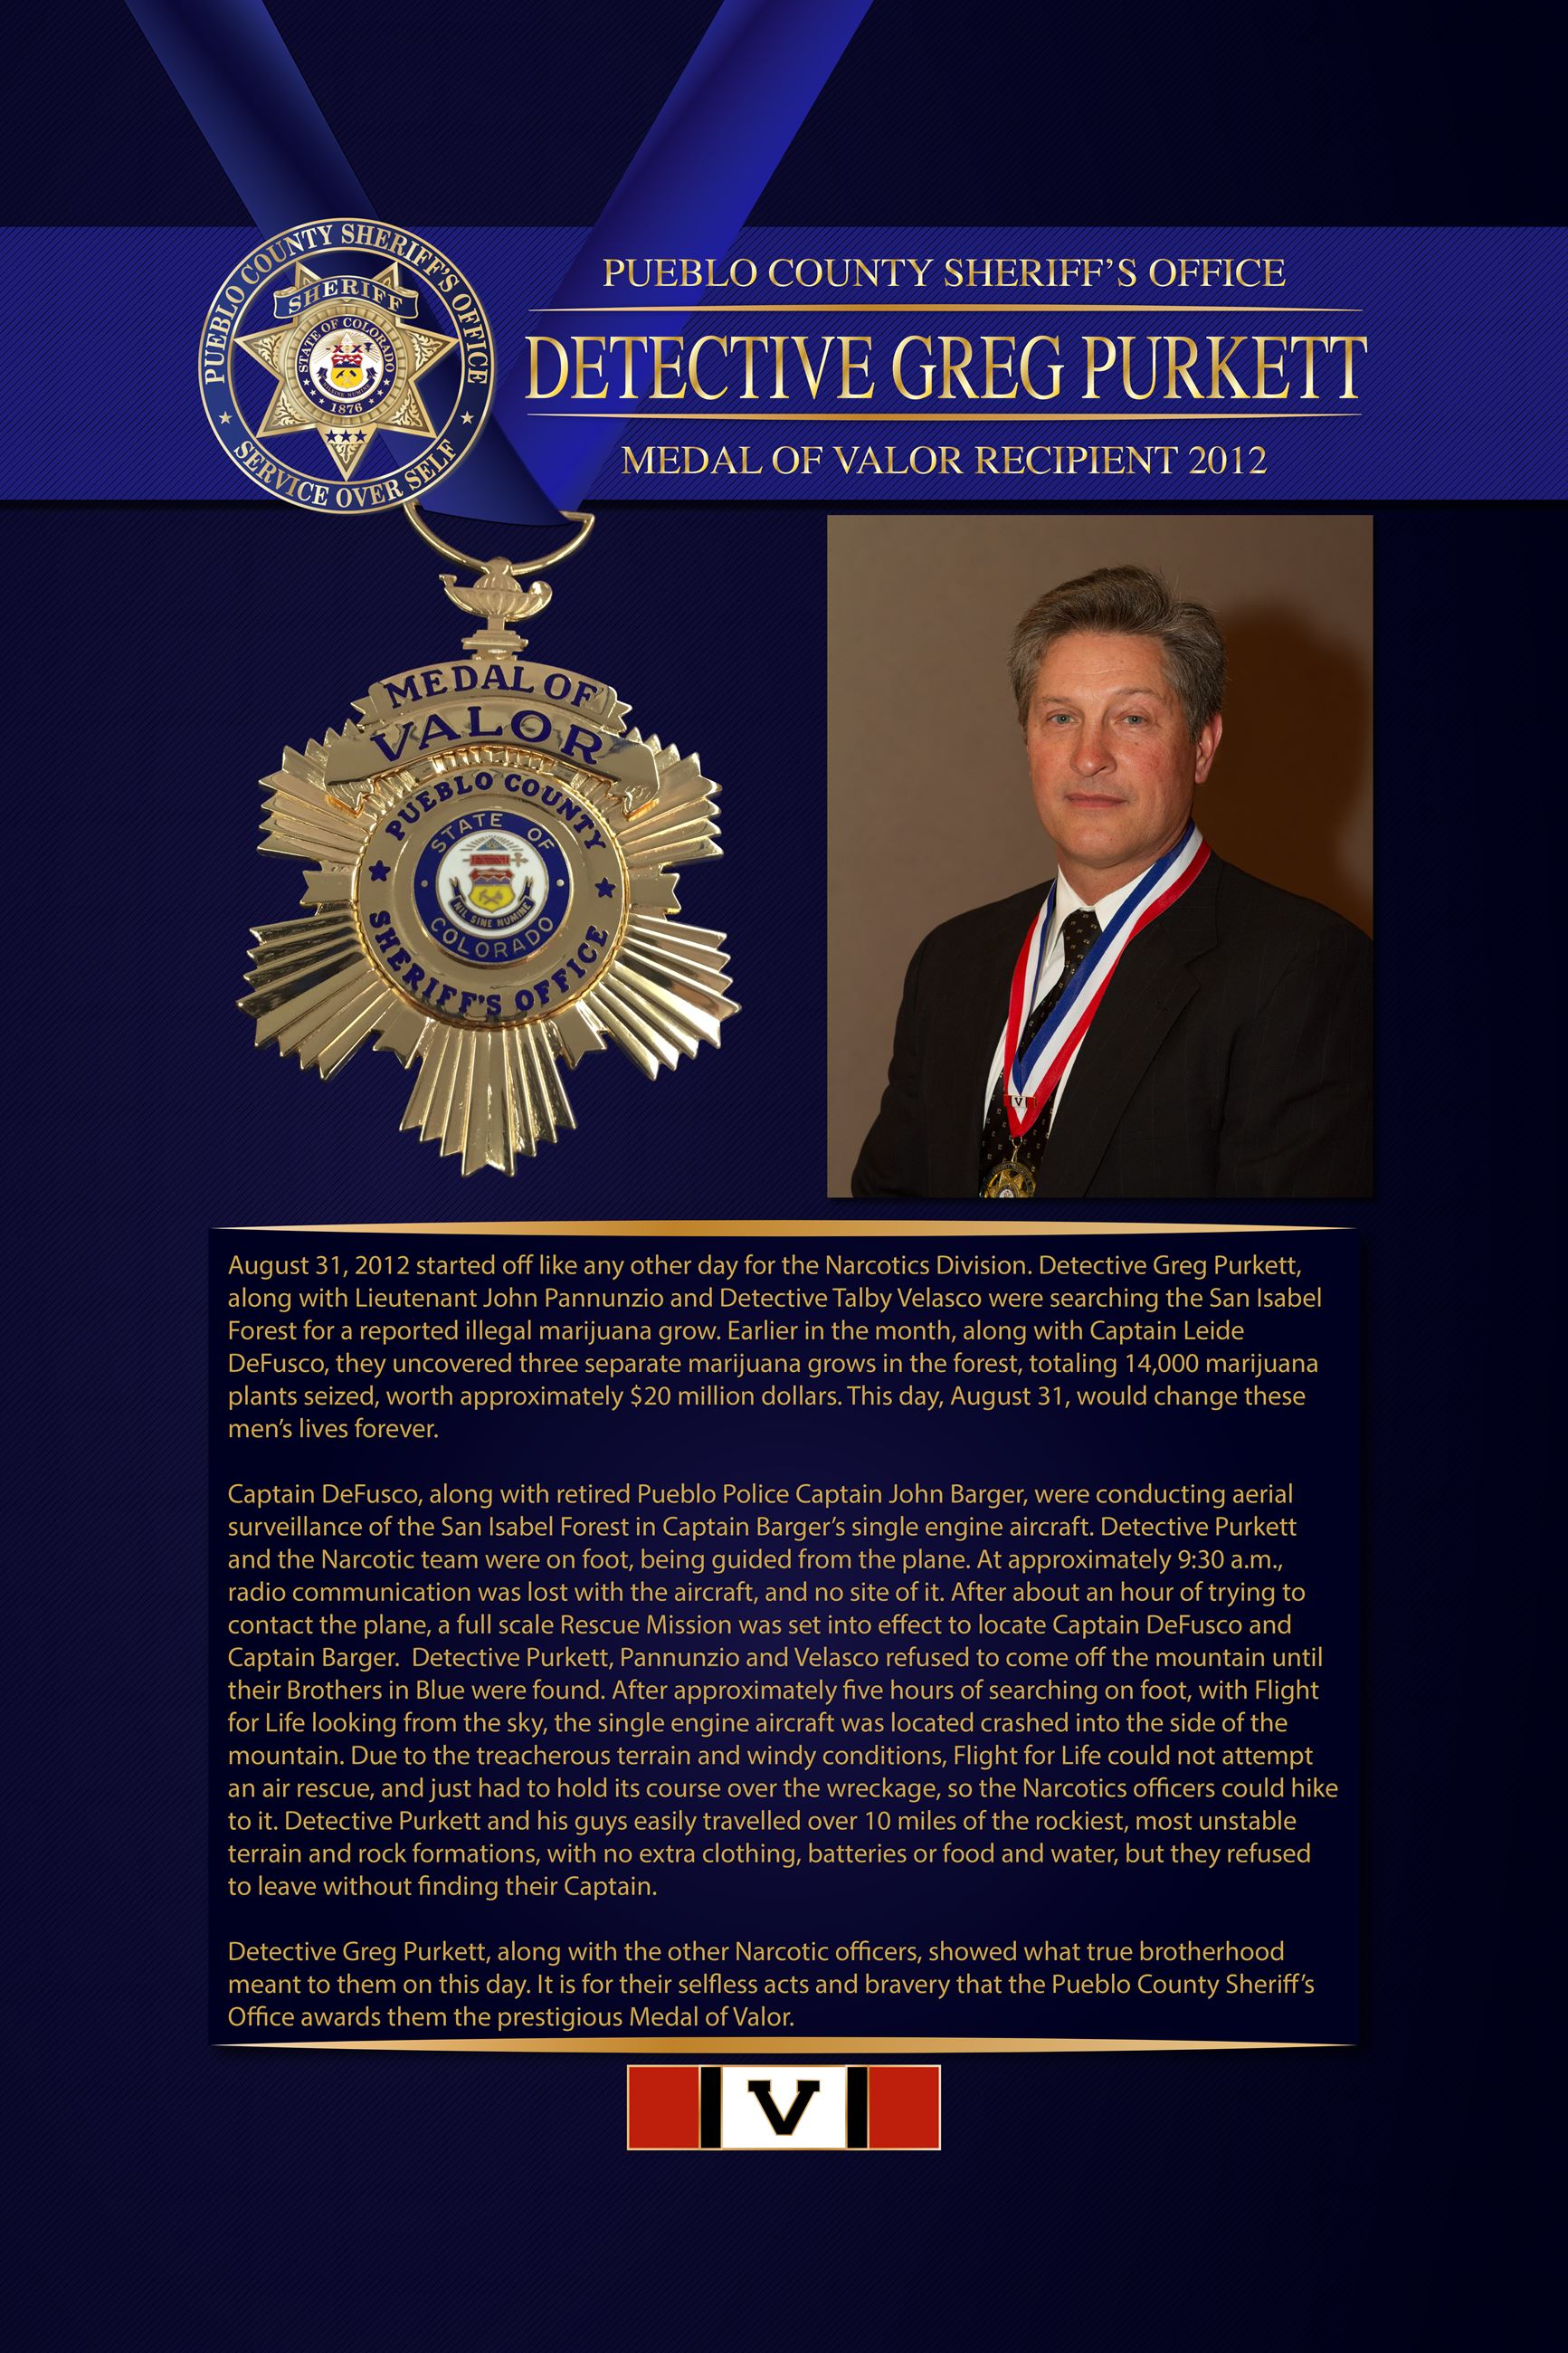 Purkett Medal of Valor